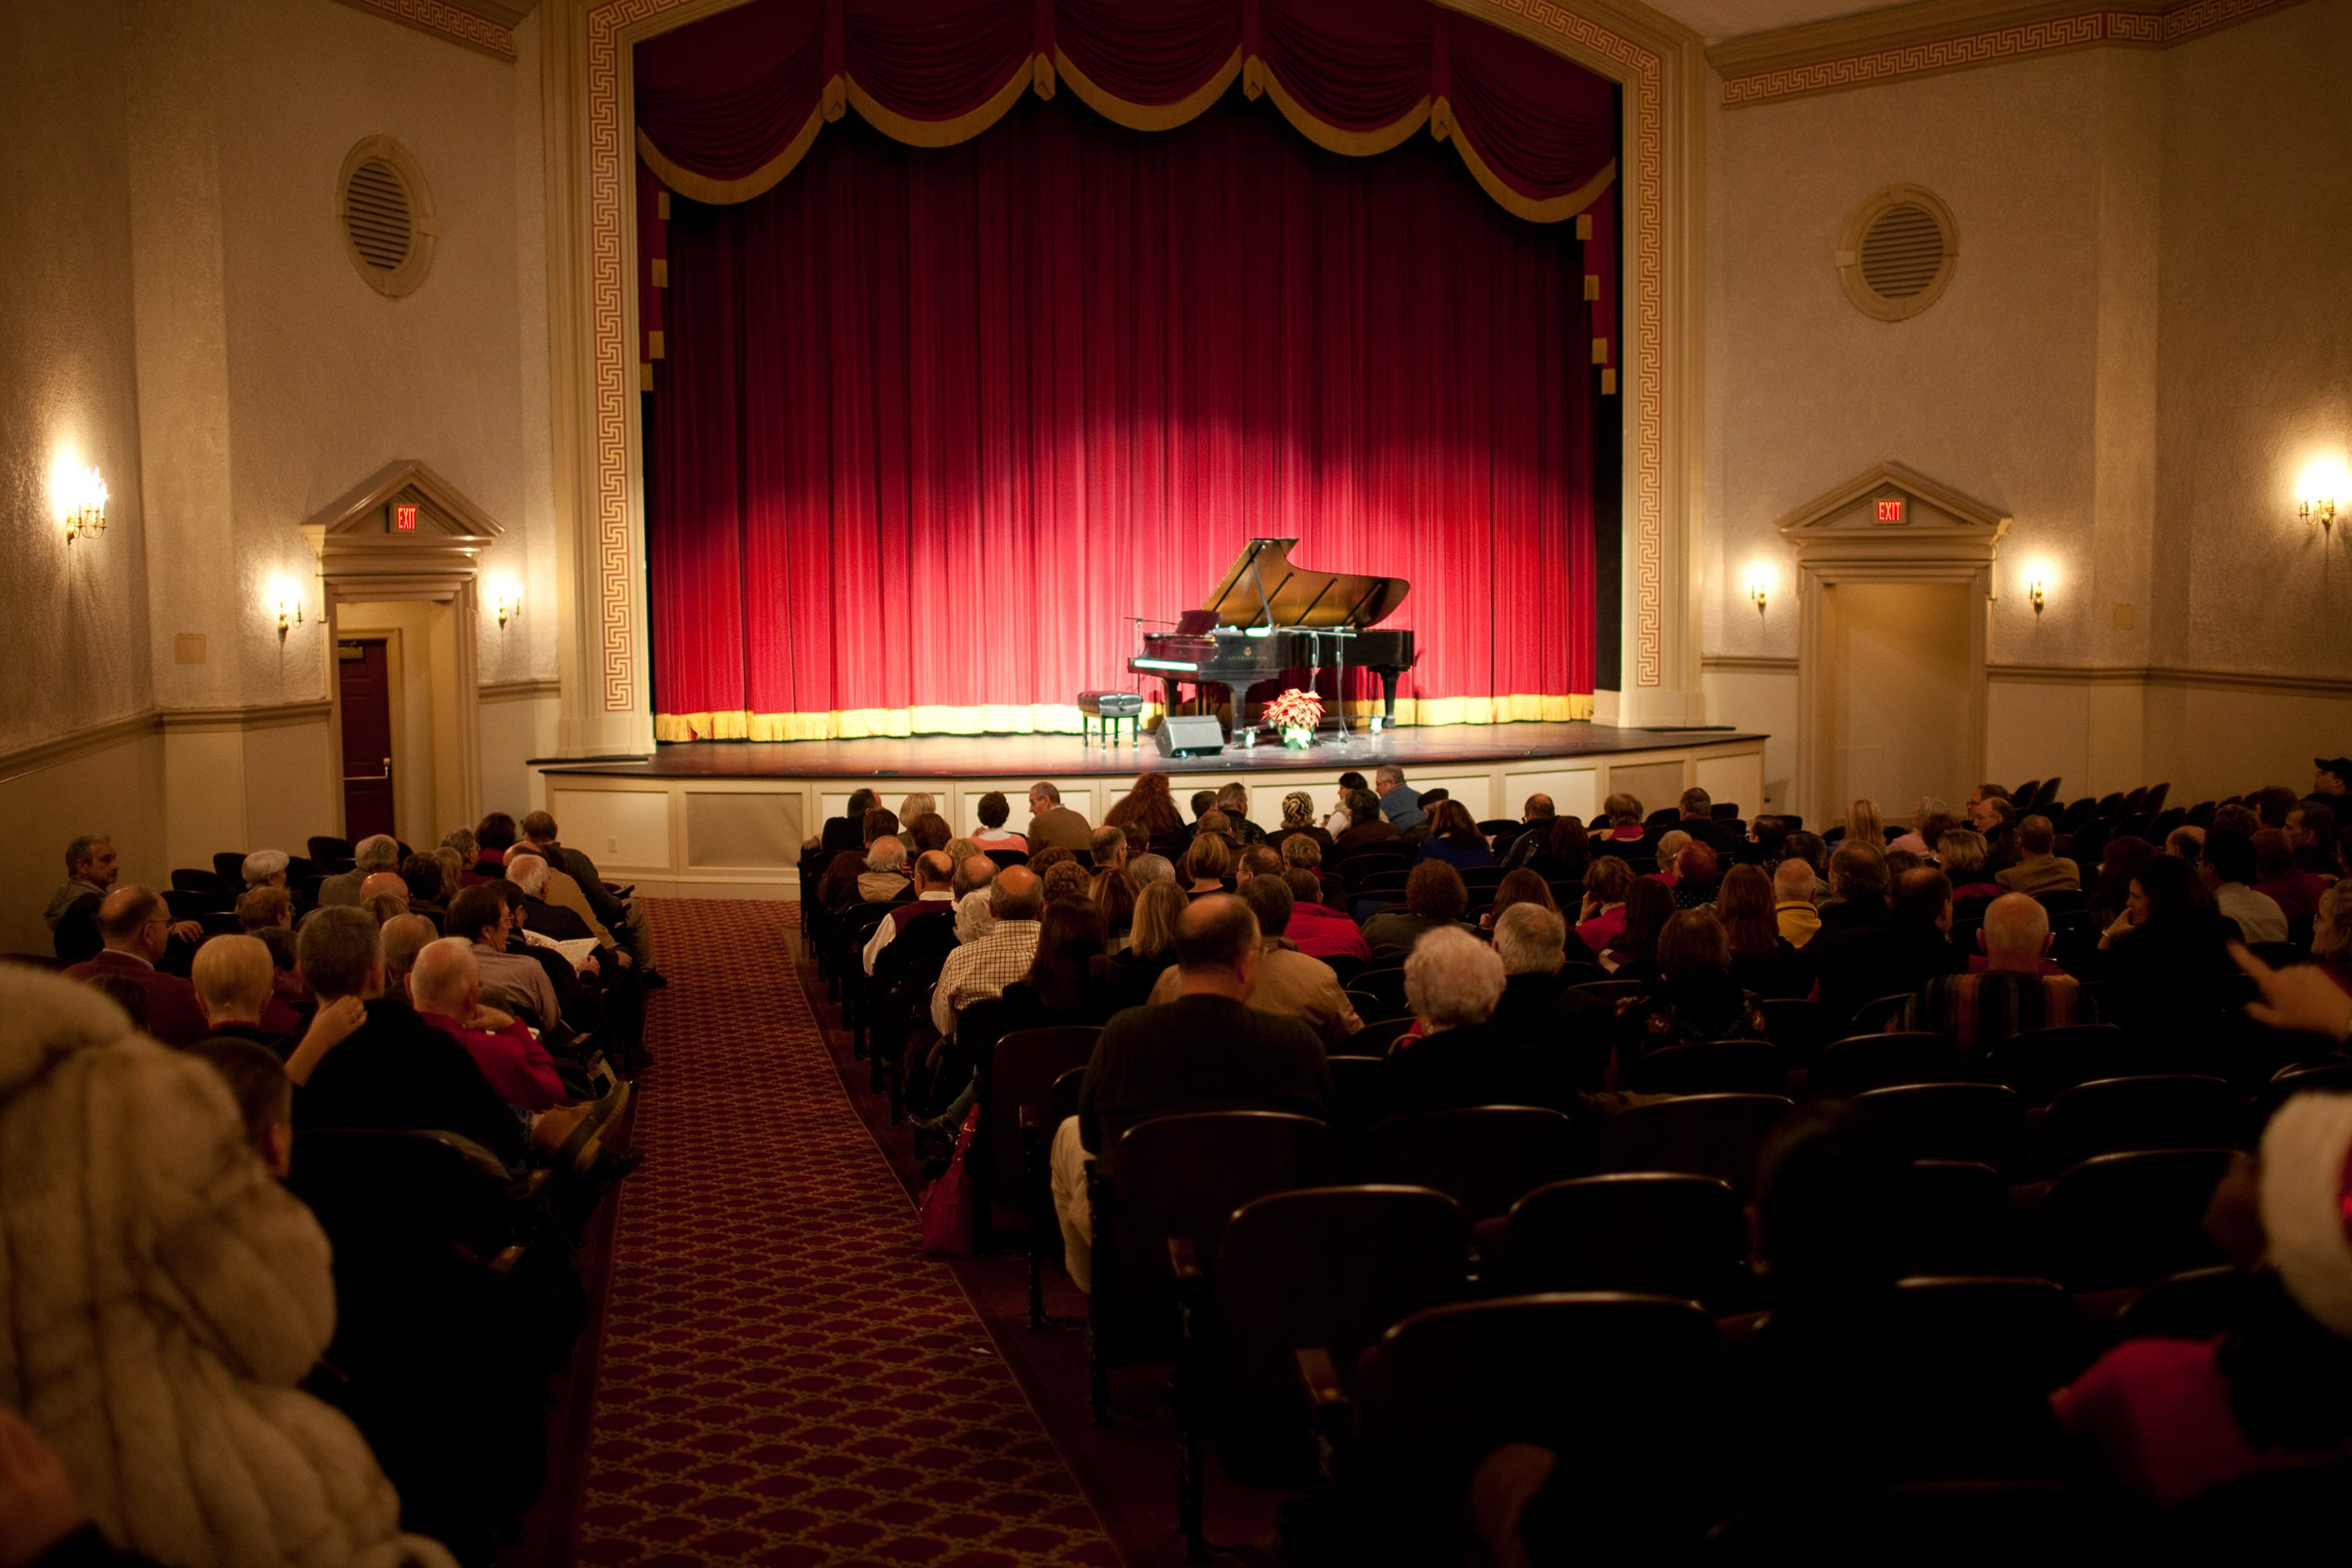 An evening at the Kimball Theater